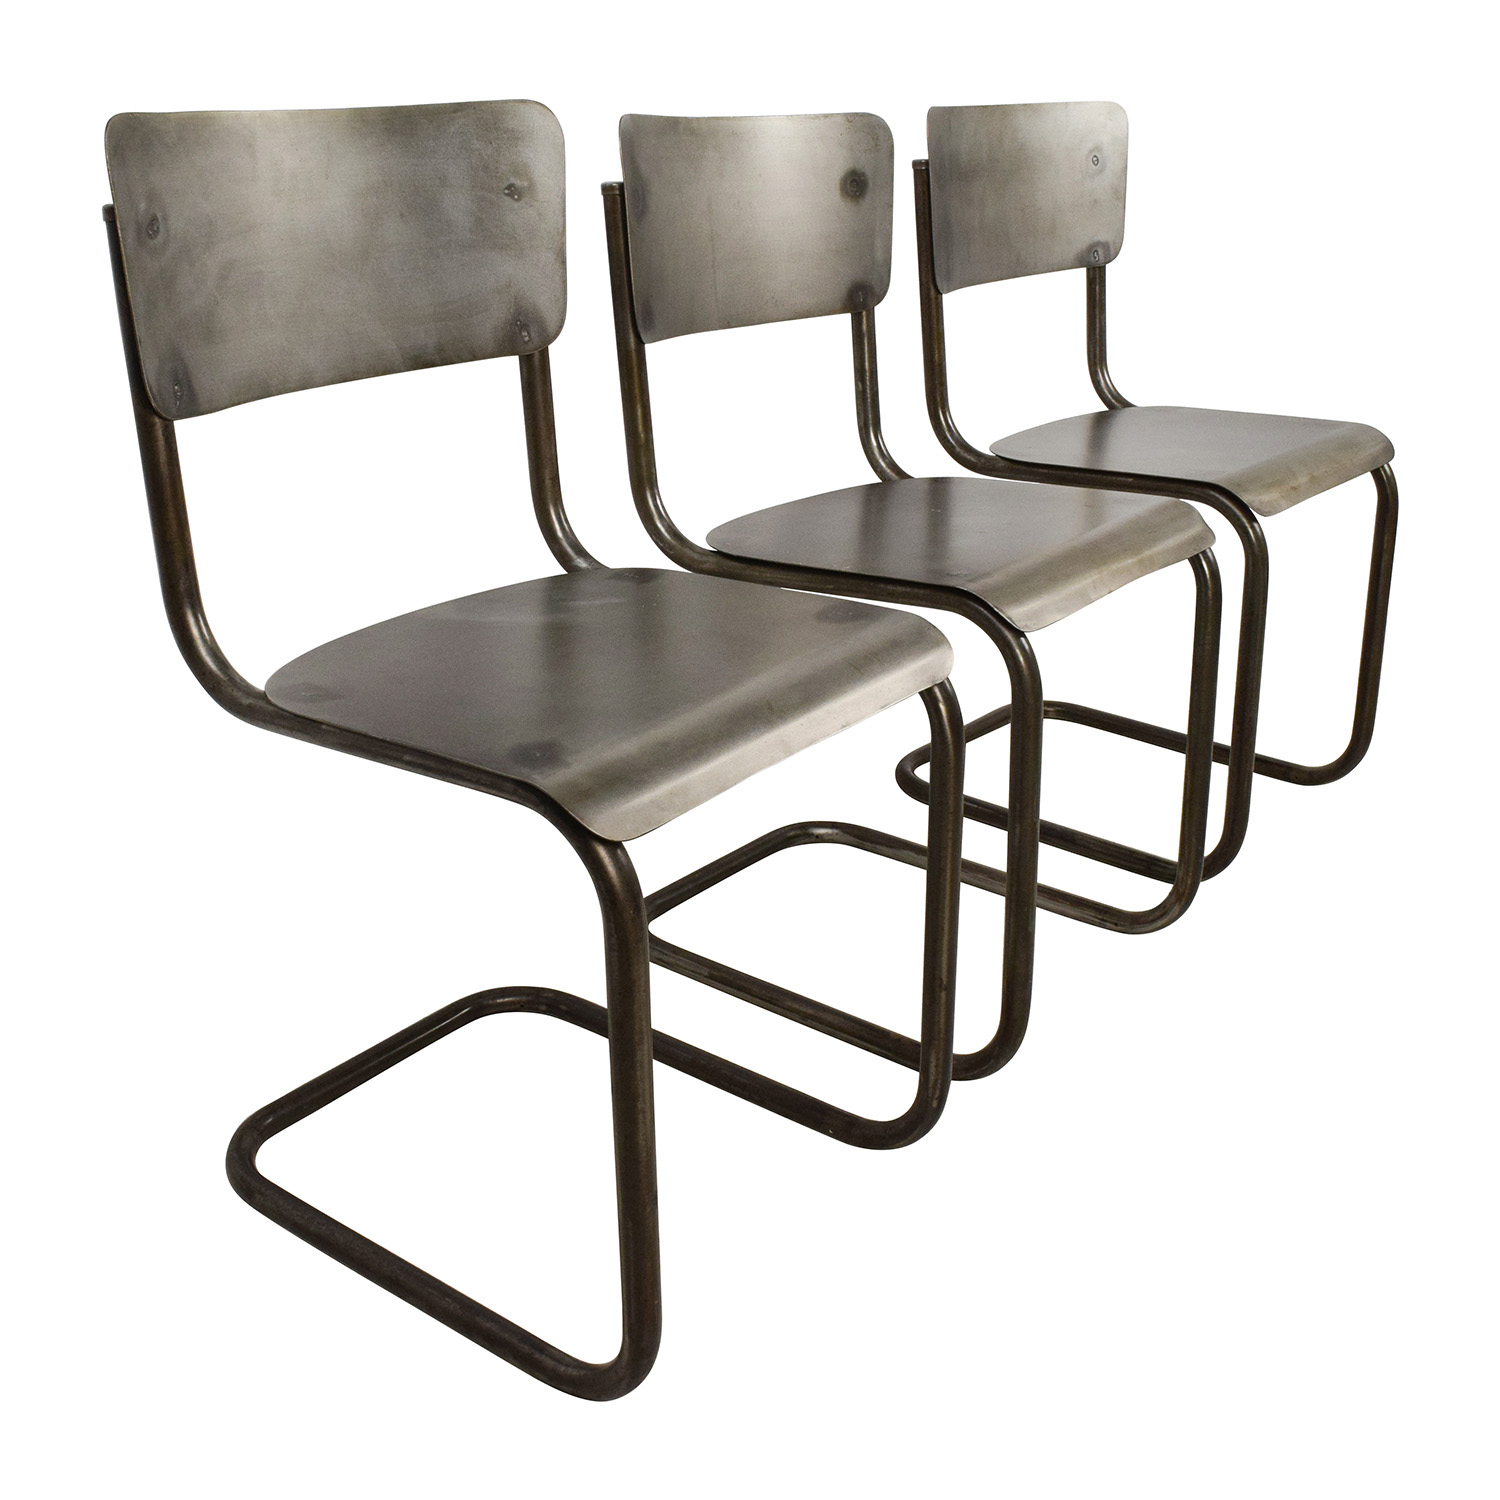 68 OFF  Industrial Style Metal Chair Set  Chairs